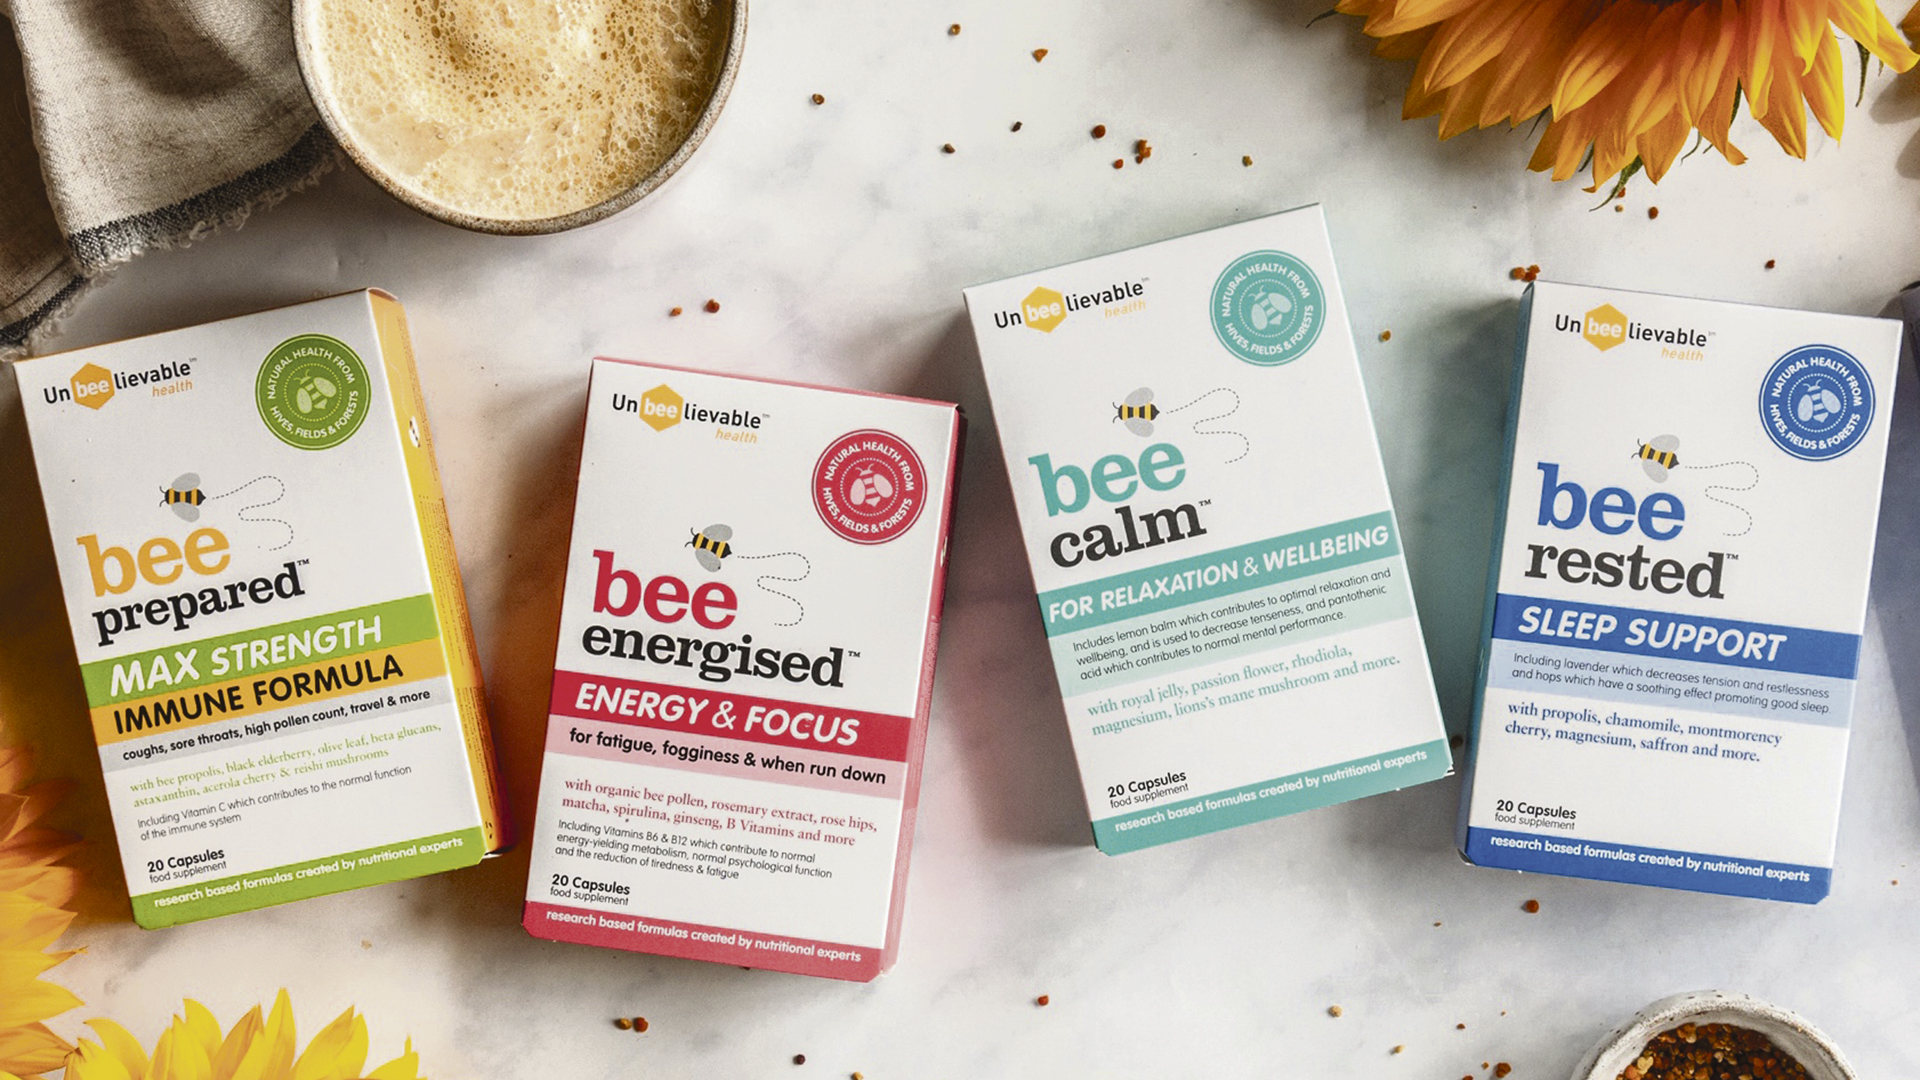 Win natural supplements designed to support your wellbeing Worth £100!